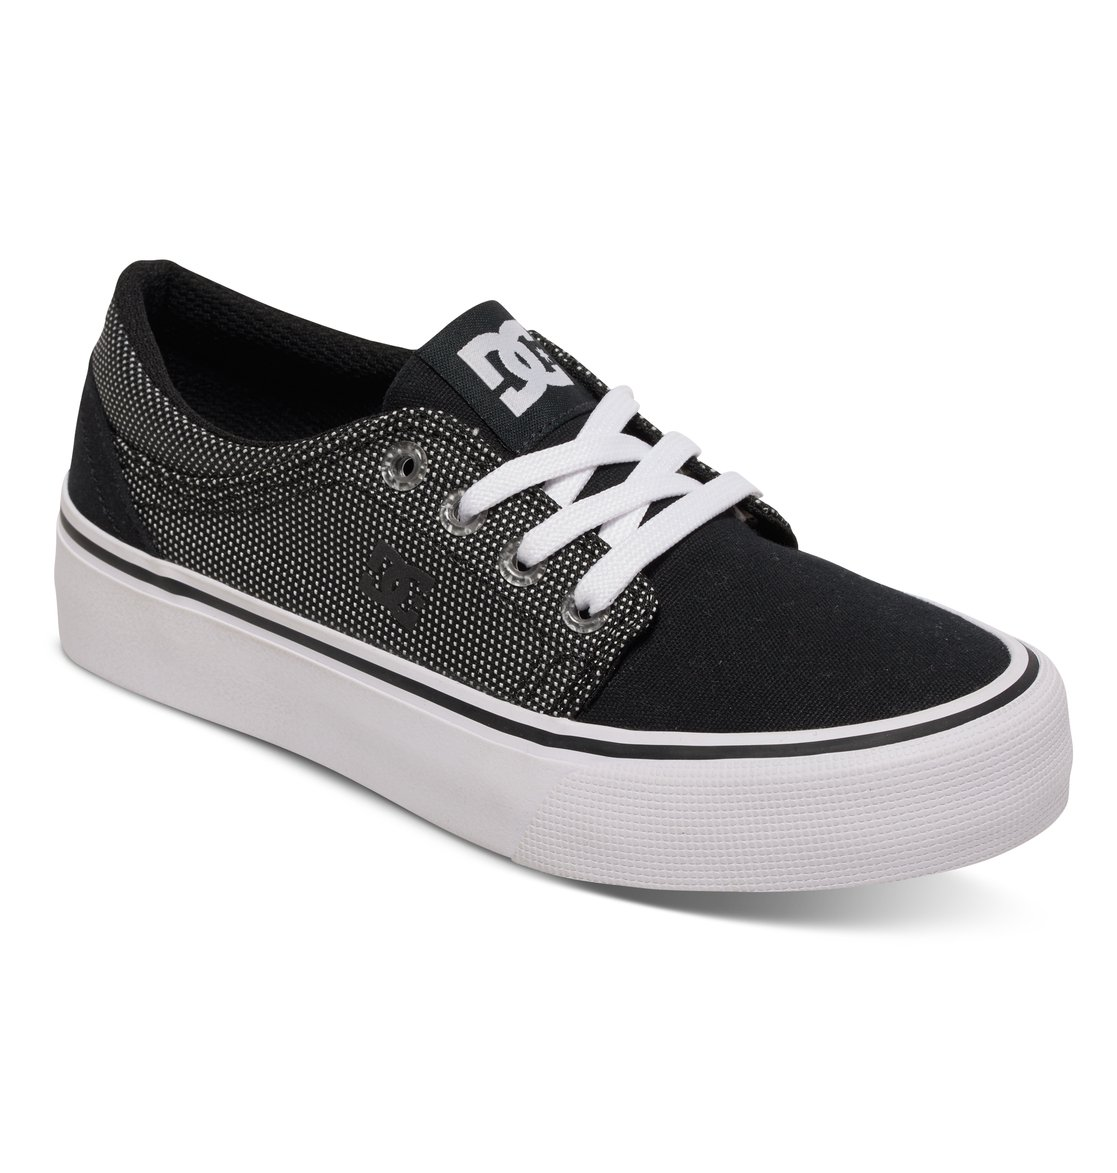 DC Shoes Trase TX - Shoes - Zapatos - Chicos - EU 30.5